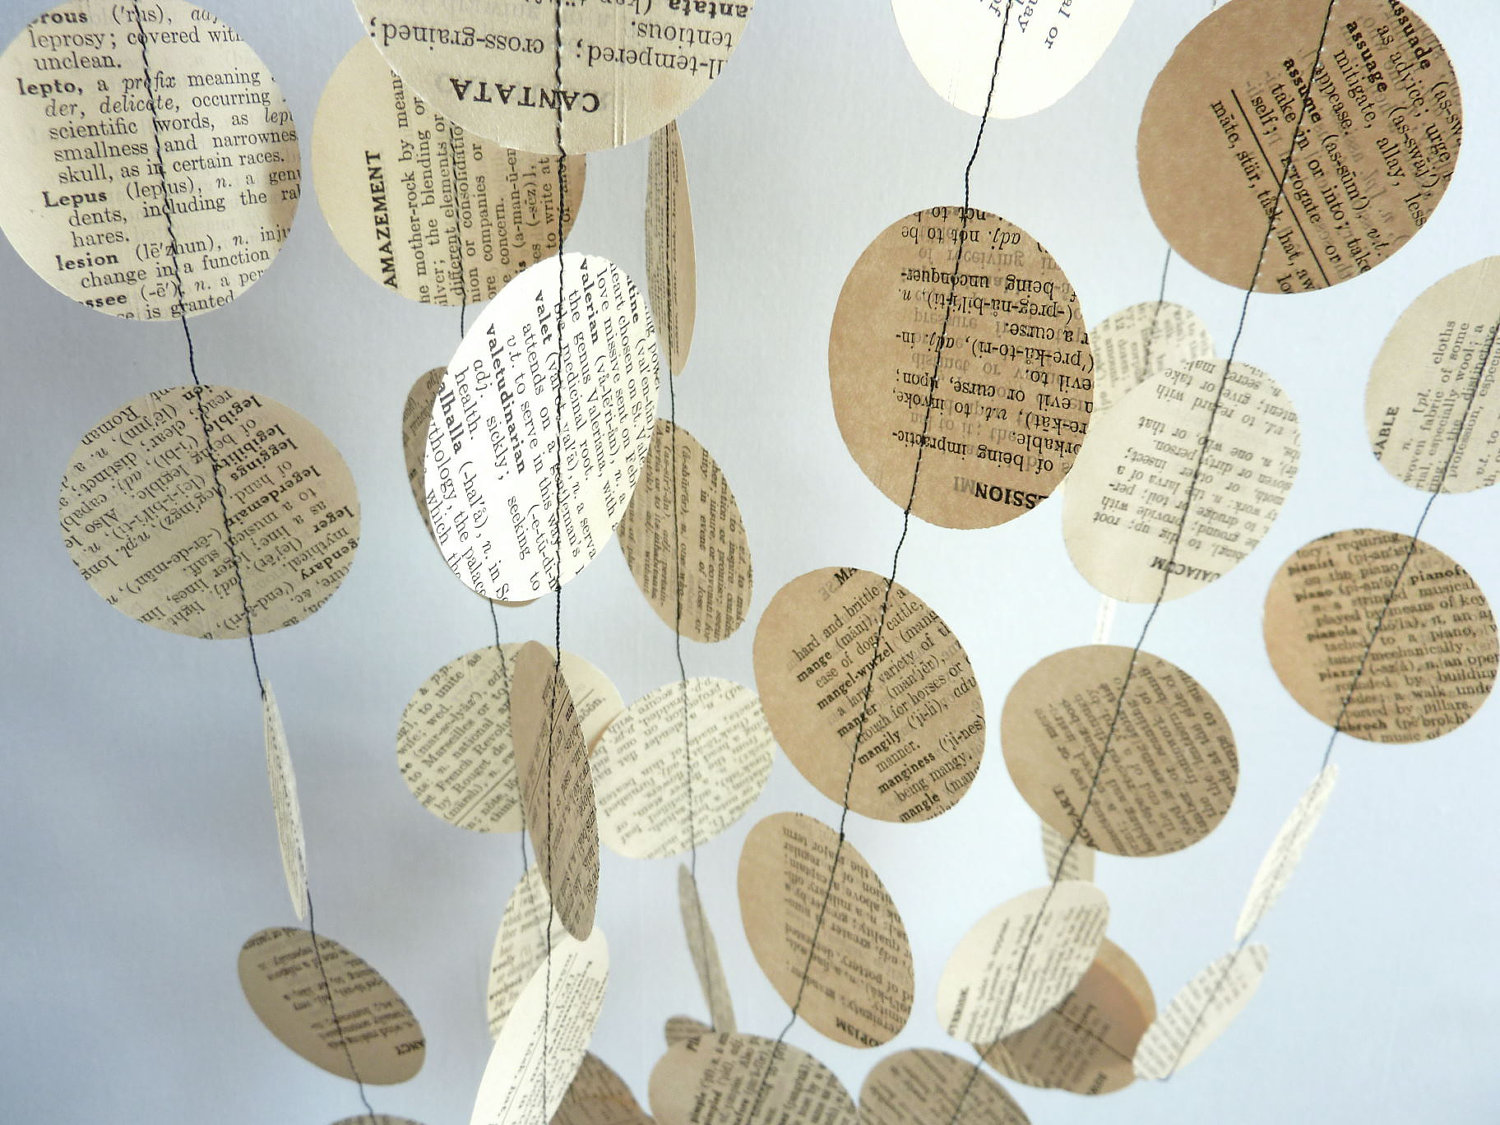 Antique Paper Garland, Dictionary, 88th BIRTHDAY, Birthday, Anniversary, Retirement, Librarian, Wedding, Party Decorations, 10' long. $10.00, via Etsy.